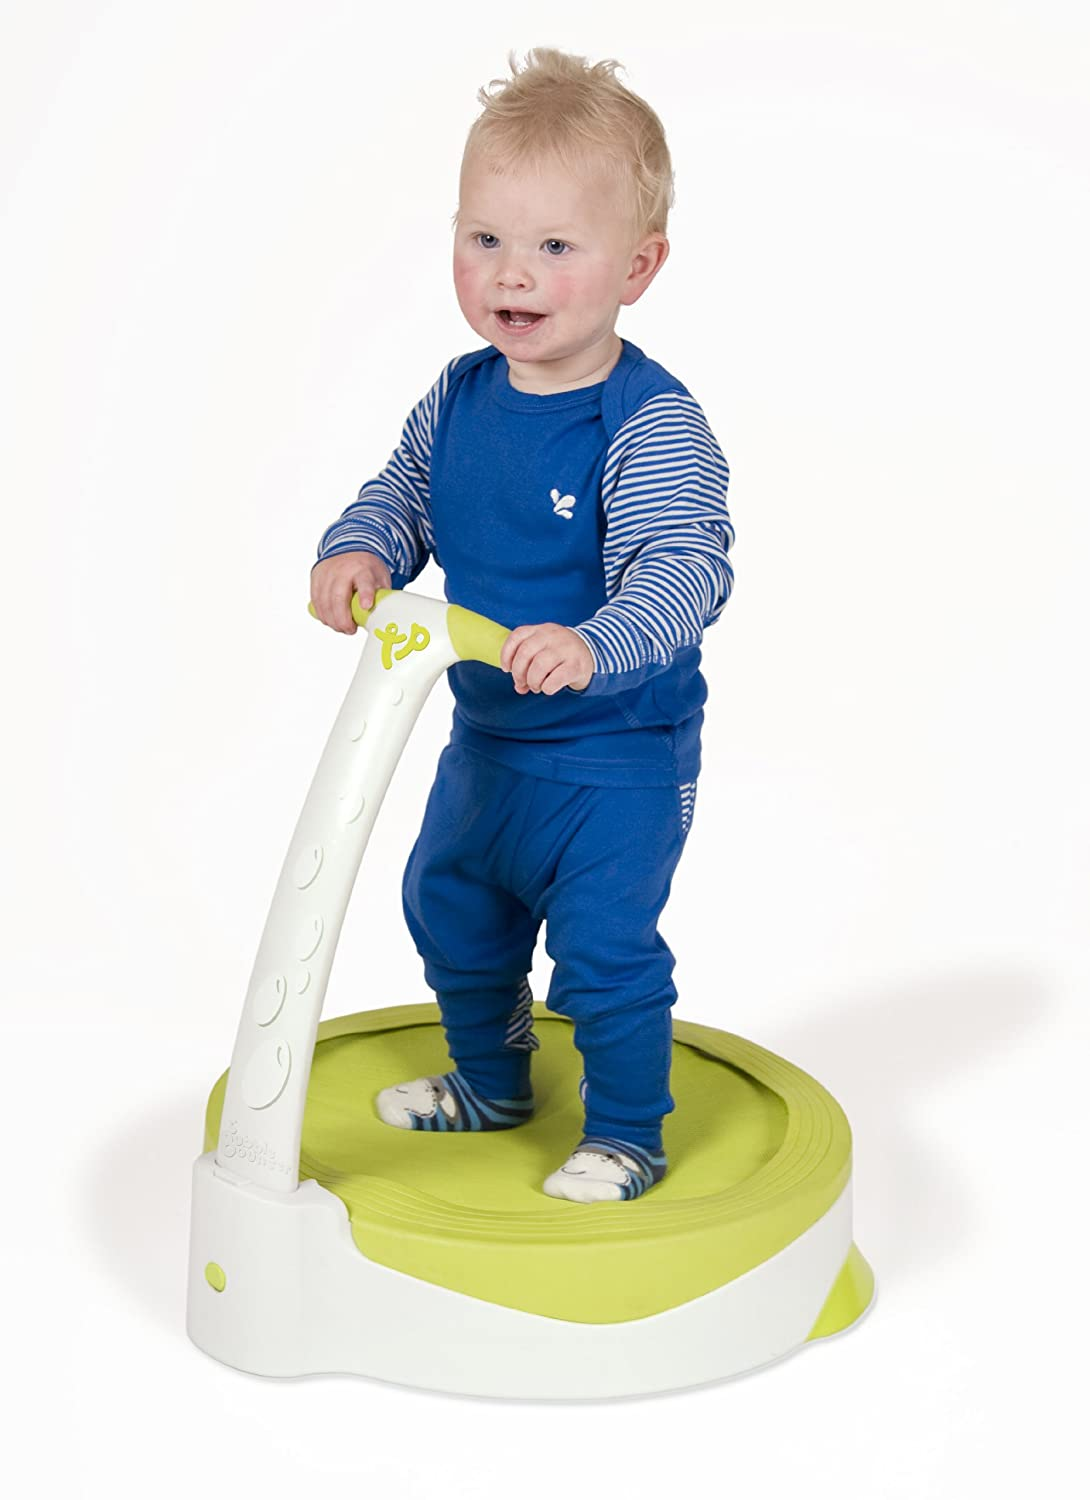 TP Toys Baby Bubble Bouncer Toddler Trampoline with Handle TP951